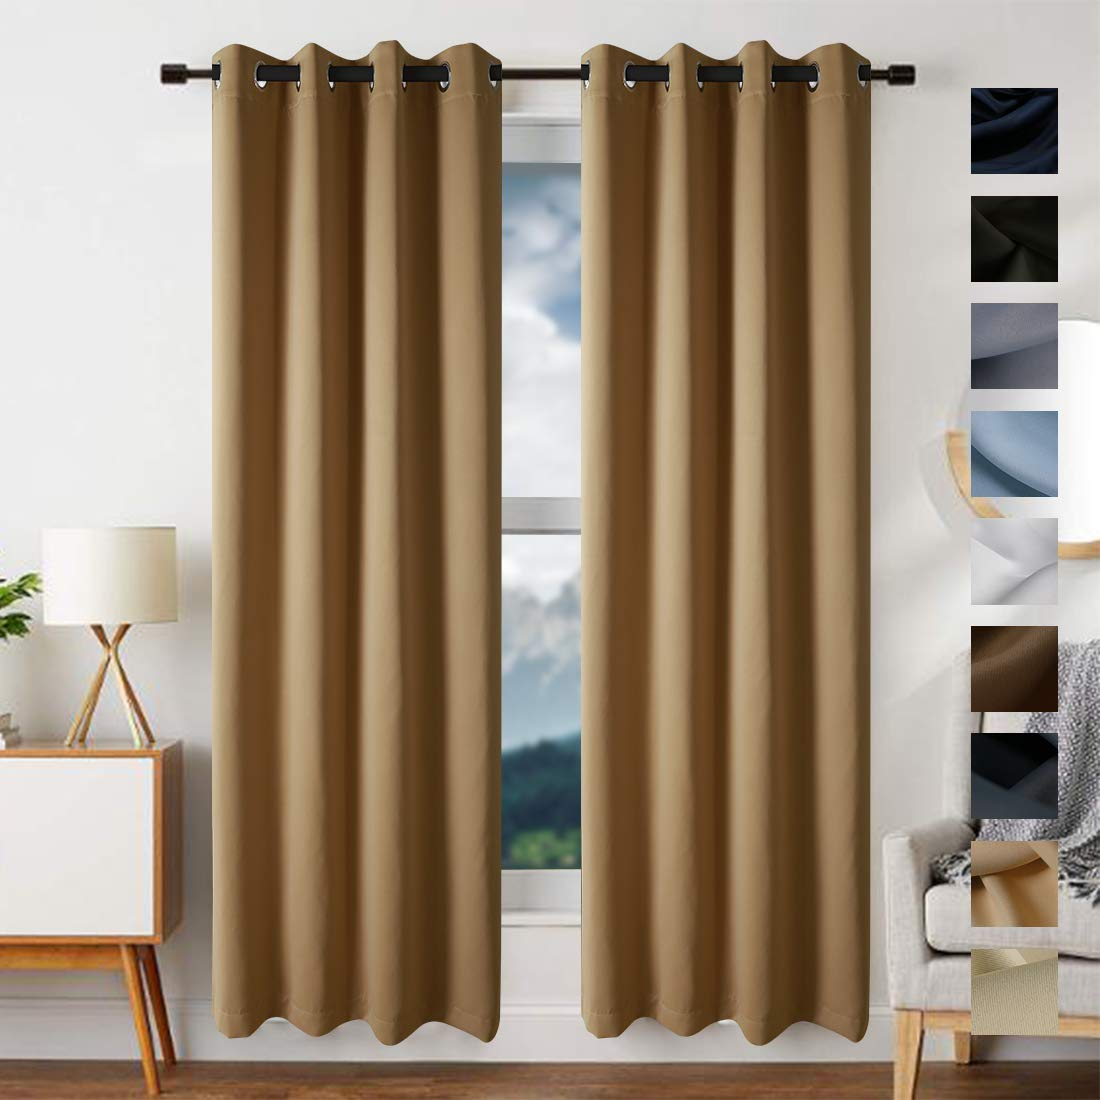 edilly blackout curtains drapery panels window treatment sets blackout draperies panels curtain for bedroom living room window kitchen 2 panels